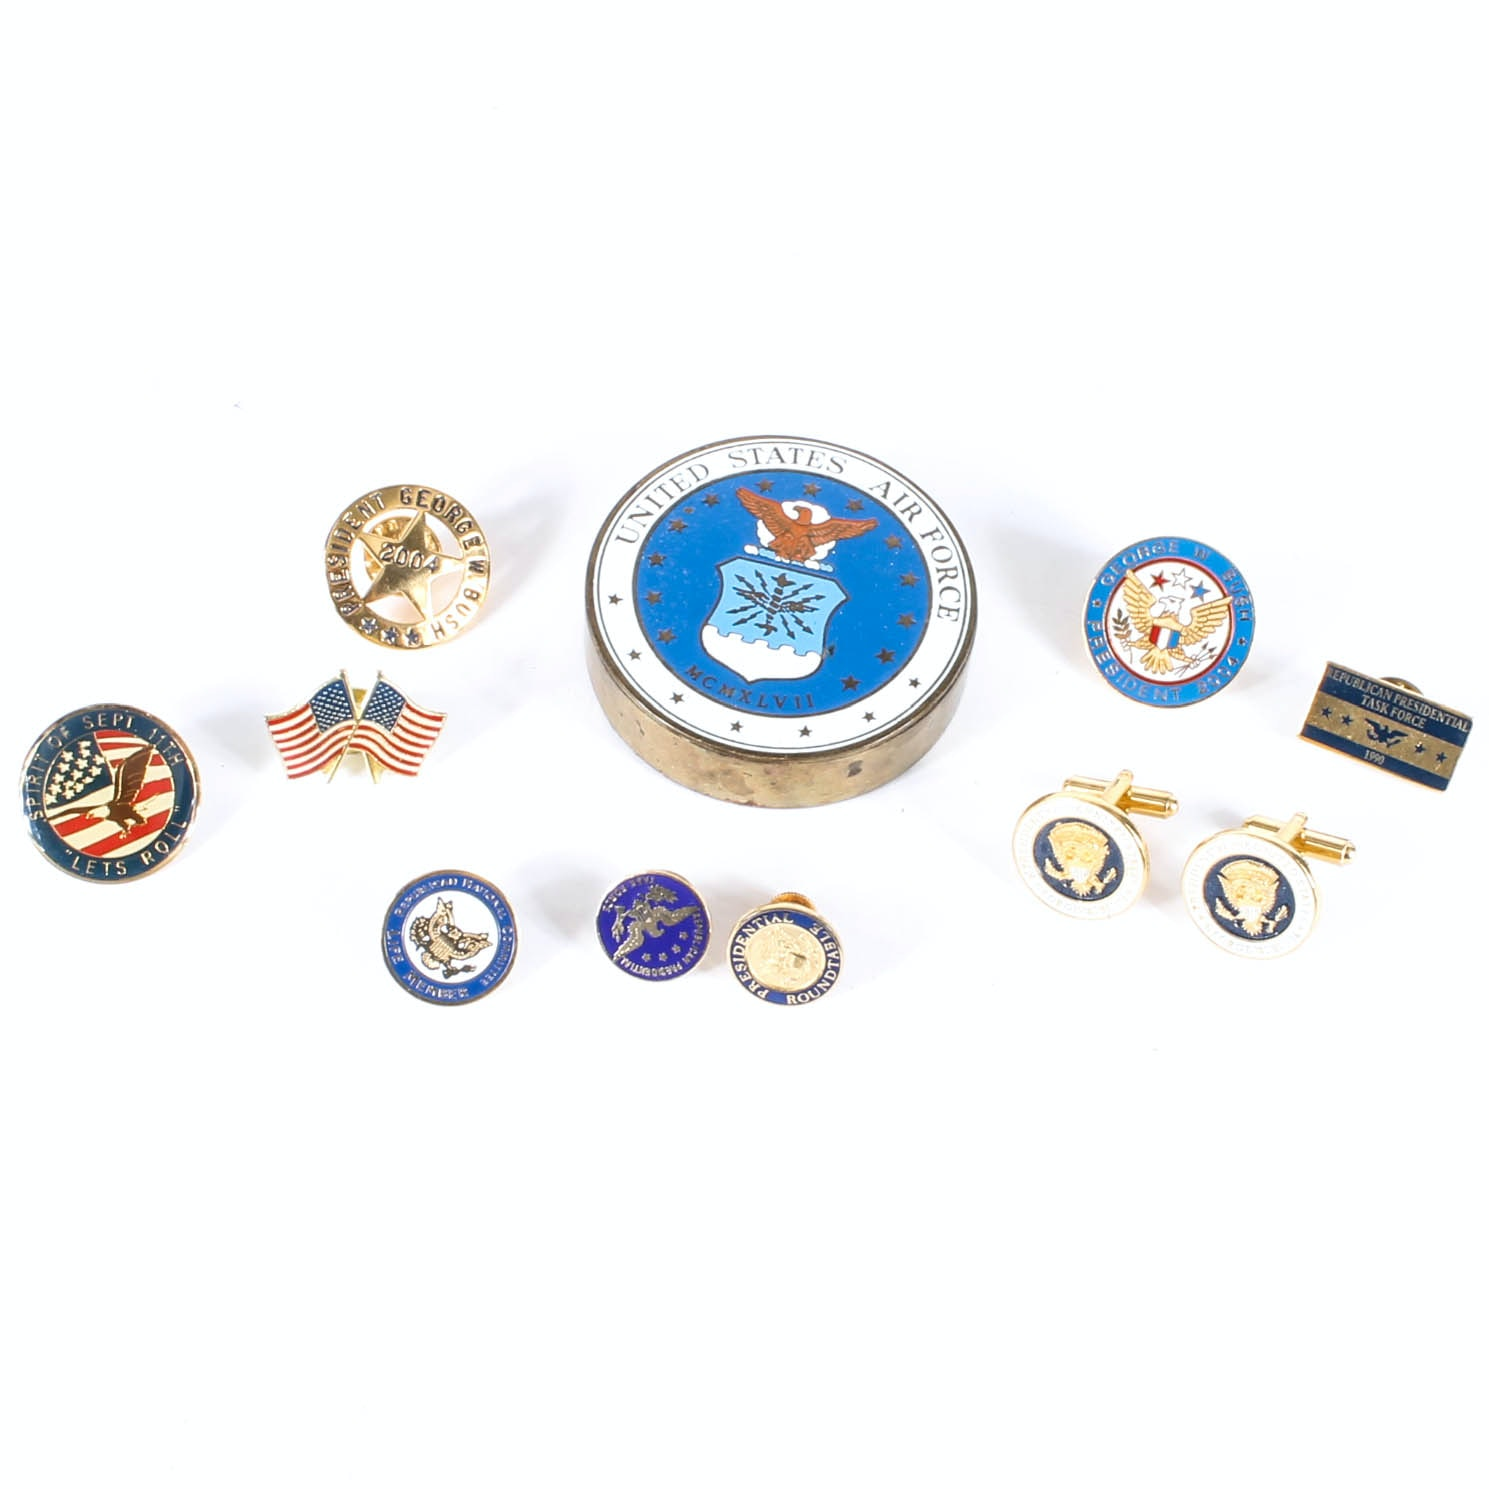 Collection of U.S., Military and Political-Themed Pins and Accessories